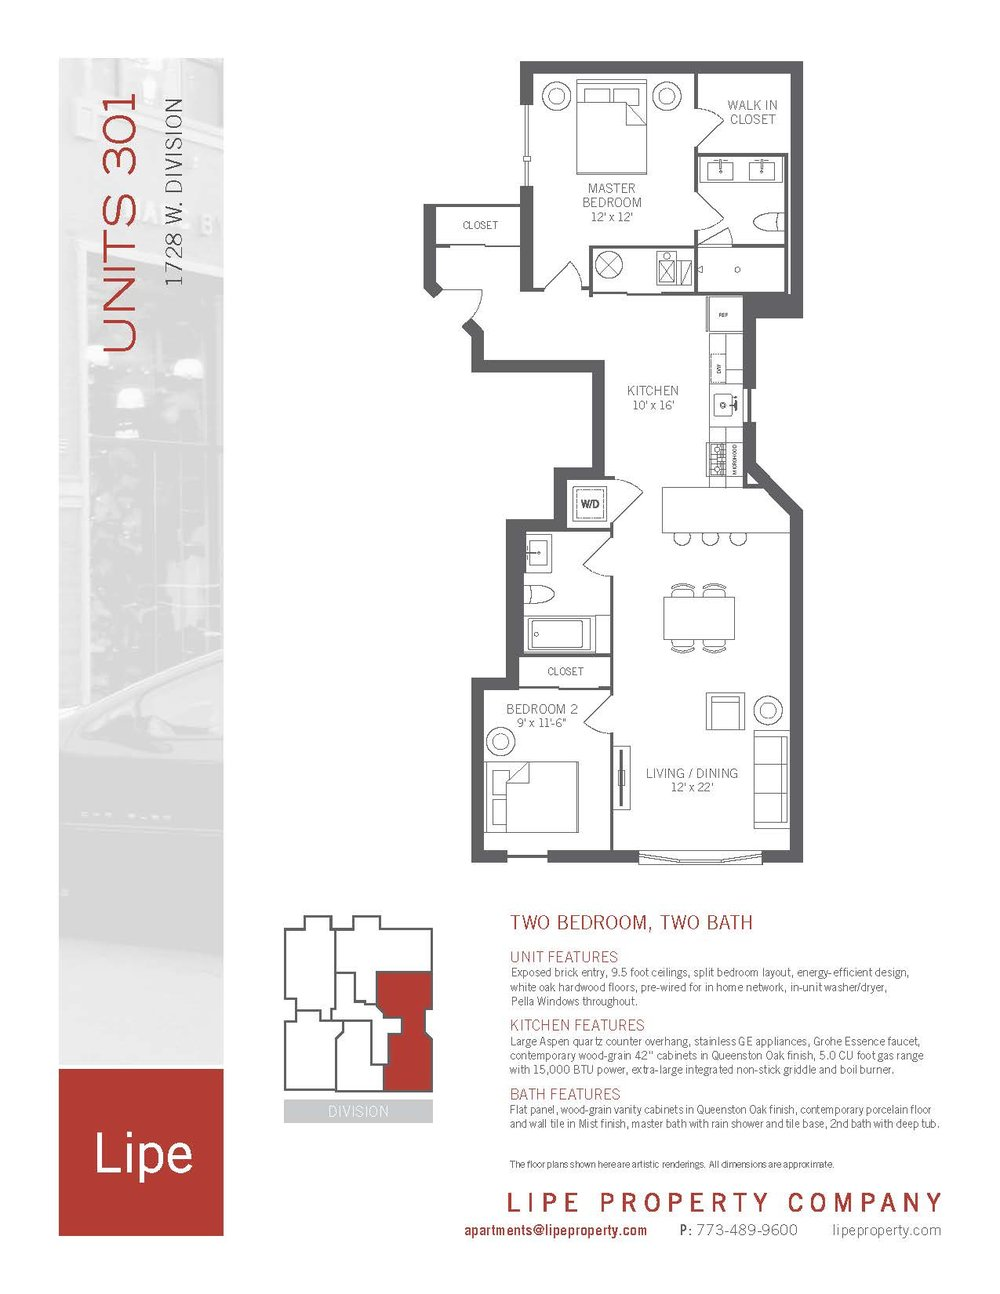 1728-West-Division-301-Floorplan-Chicago-apartment-for-rent.jpg